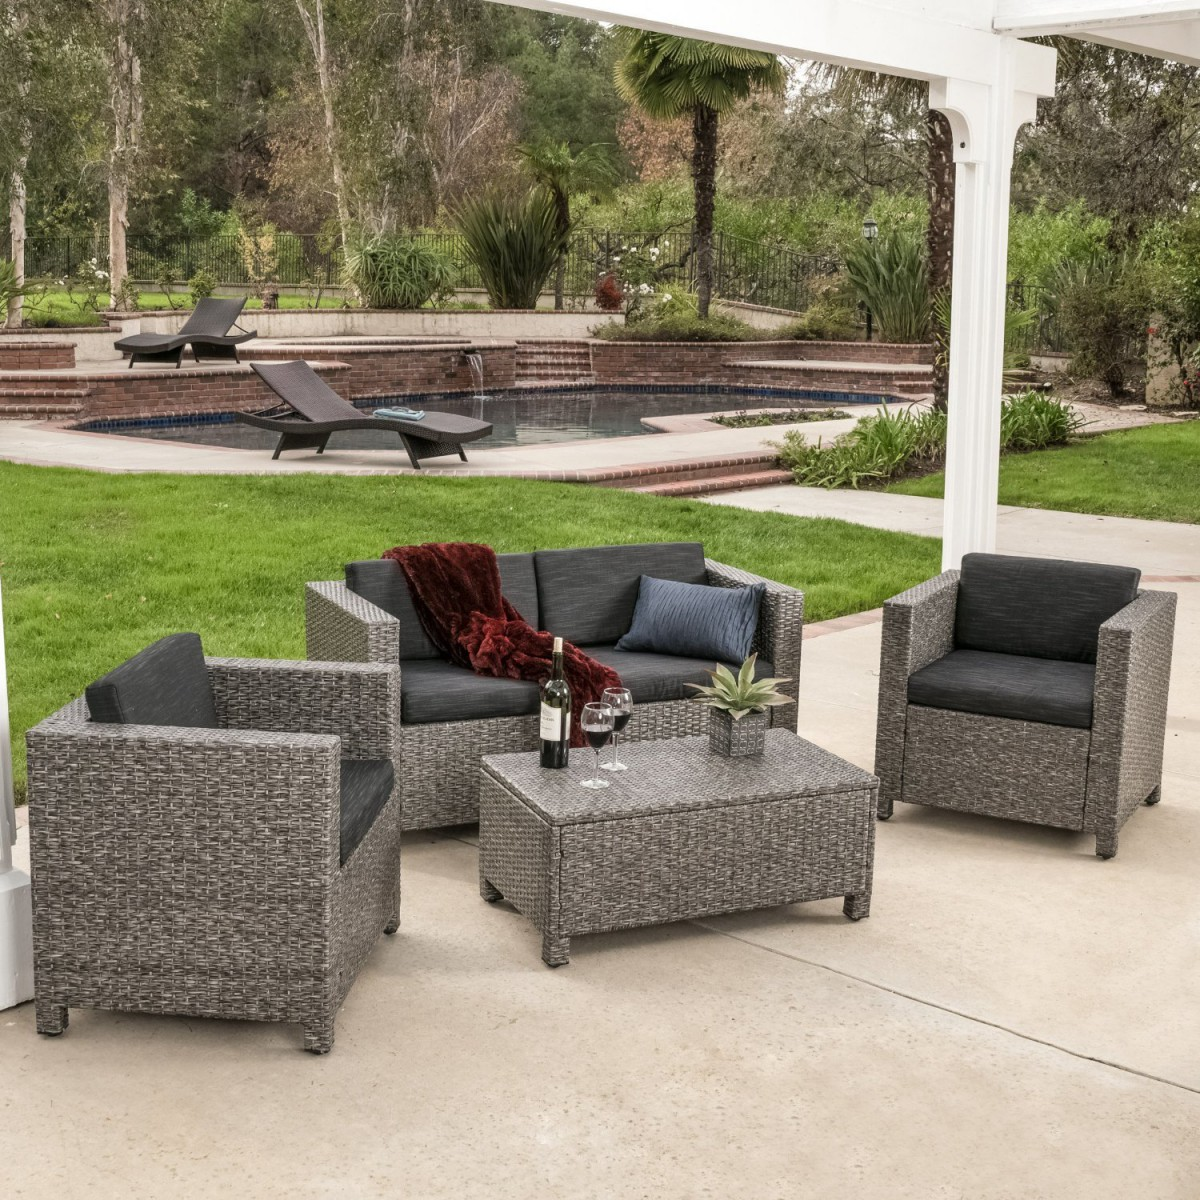 rattan 4 piece sofa set black rooms to go sleeper cindy crawford wicker furniture design ideas exquisite